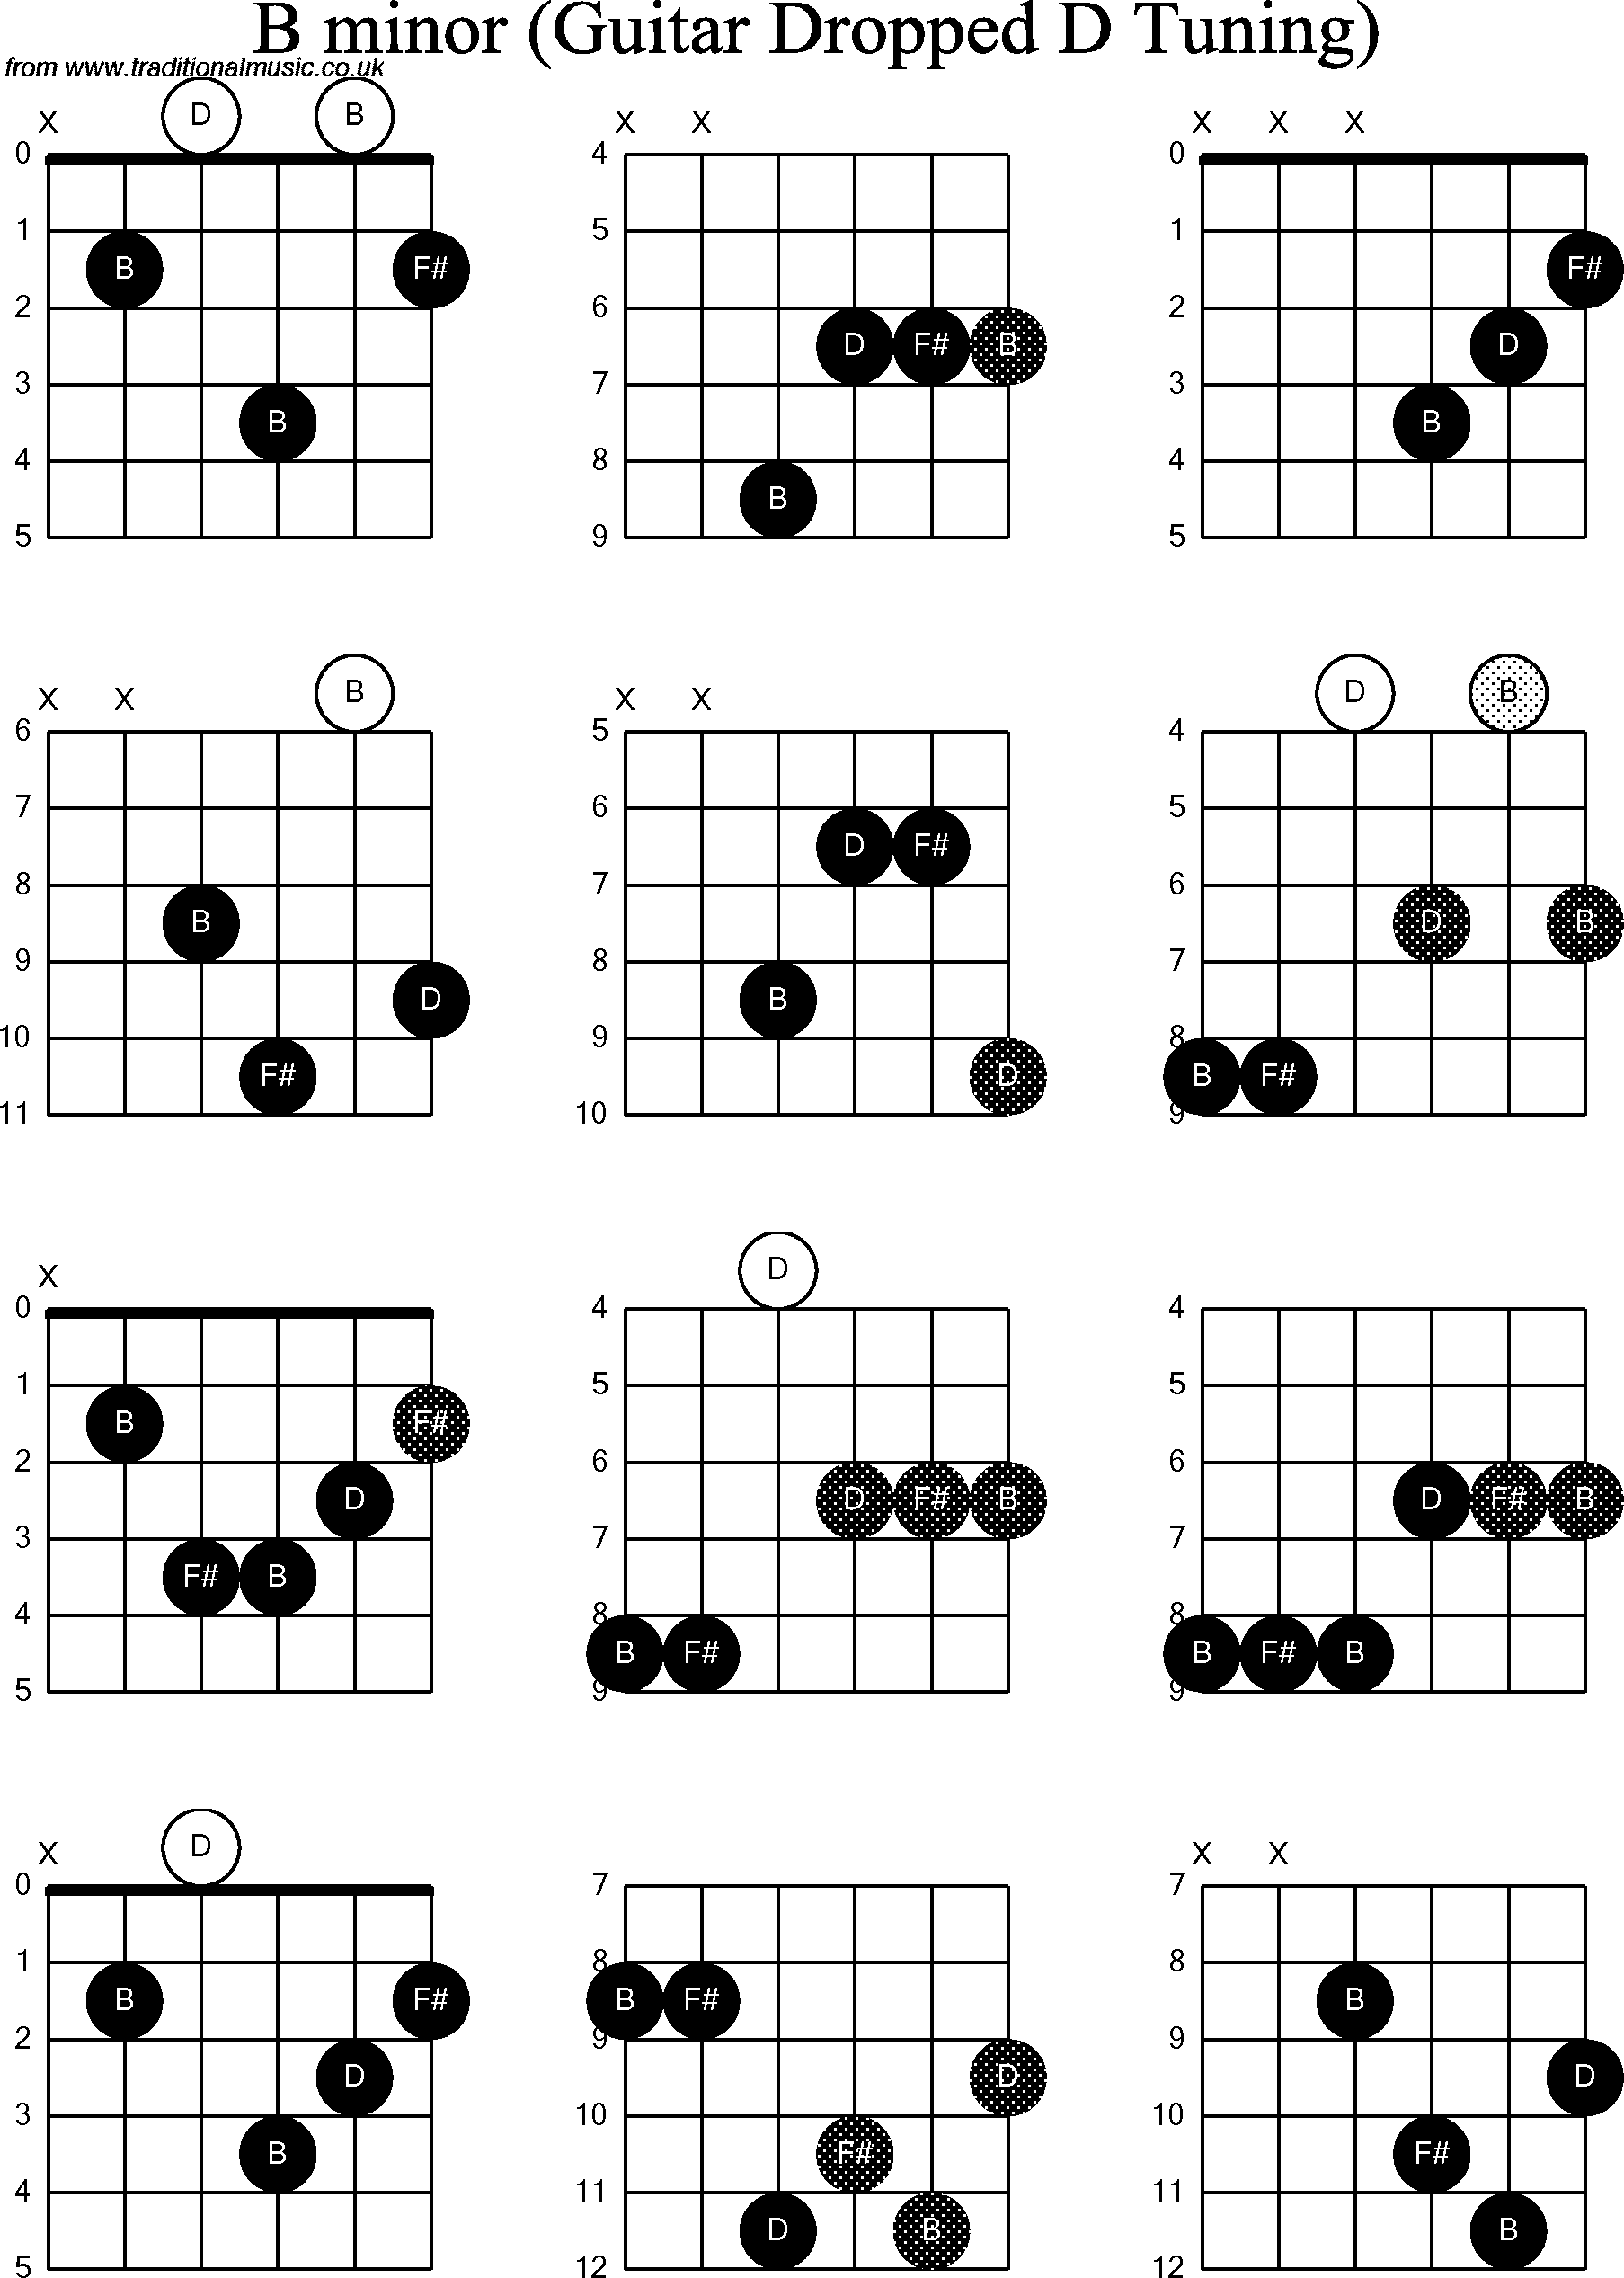 Chord Diagrams For Dropped D Guitardadgbe B Minor